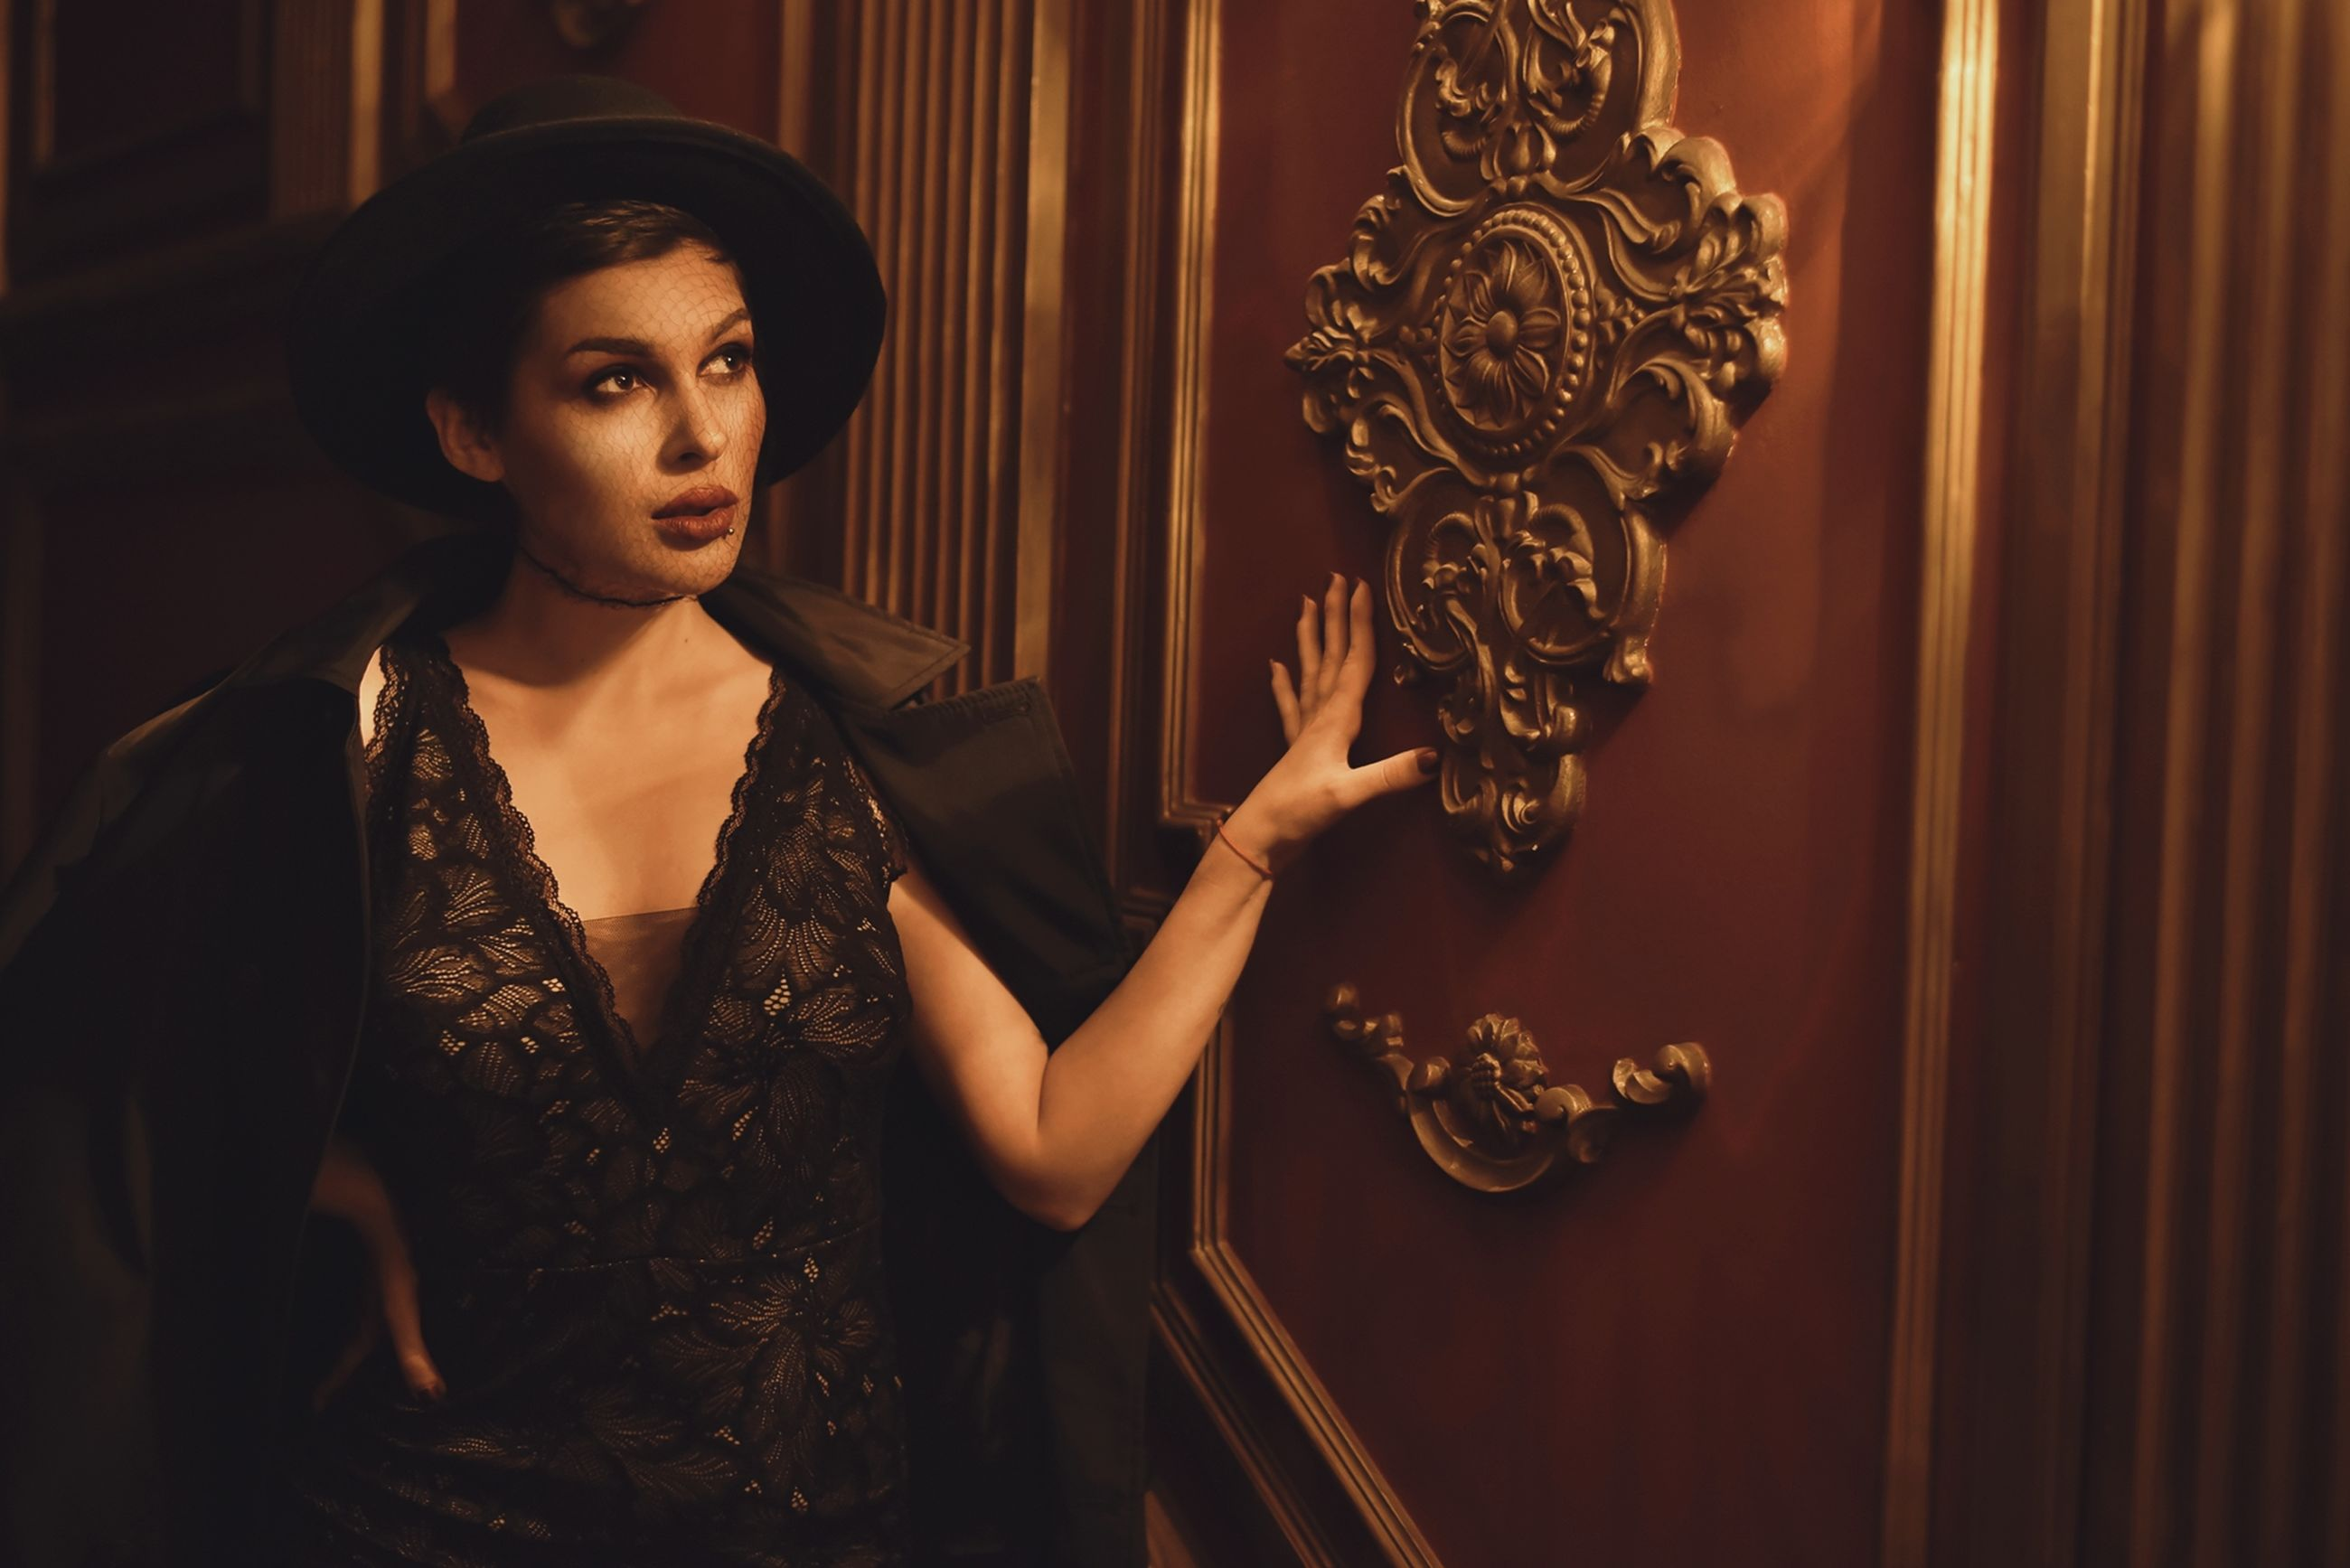 one person, adult, young adult, women, portrait, indoors, clothing, fashion, arts culture and entertainment, elegance, standing, looking at camera, female, looking, gold, dress, curtain, waist up, glamour, front view, wealth, brown hair, serious